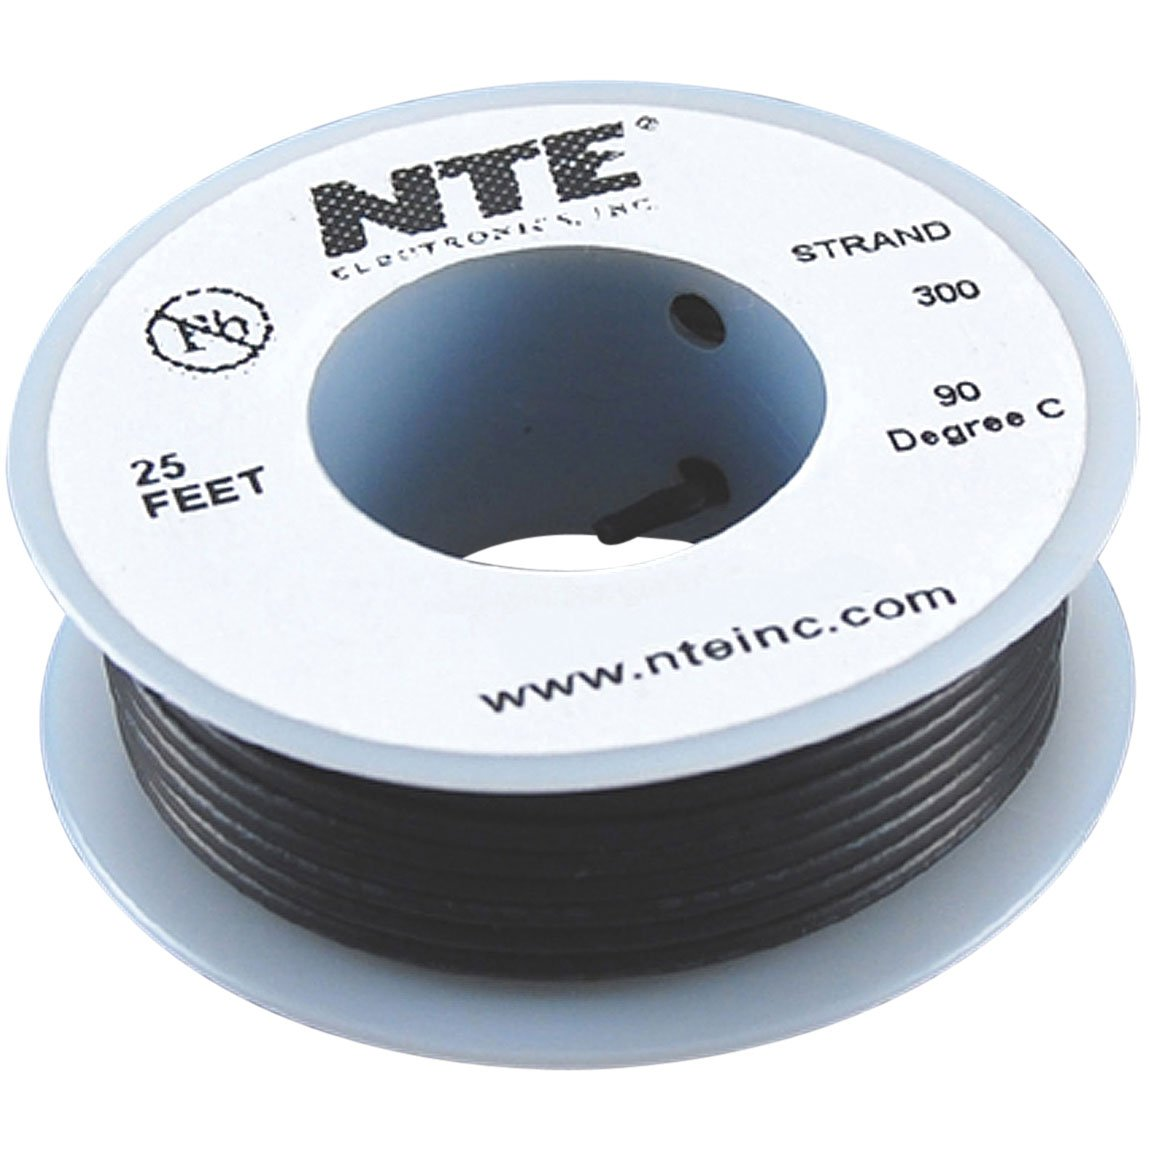 NTE Electronics WH26-00-25 Hook Up Wire, Stranded, Type 26 Gauge, 25 ...